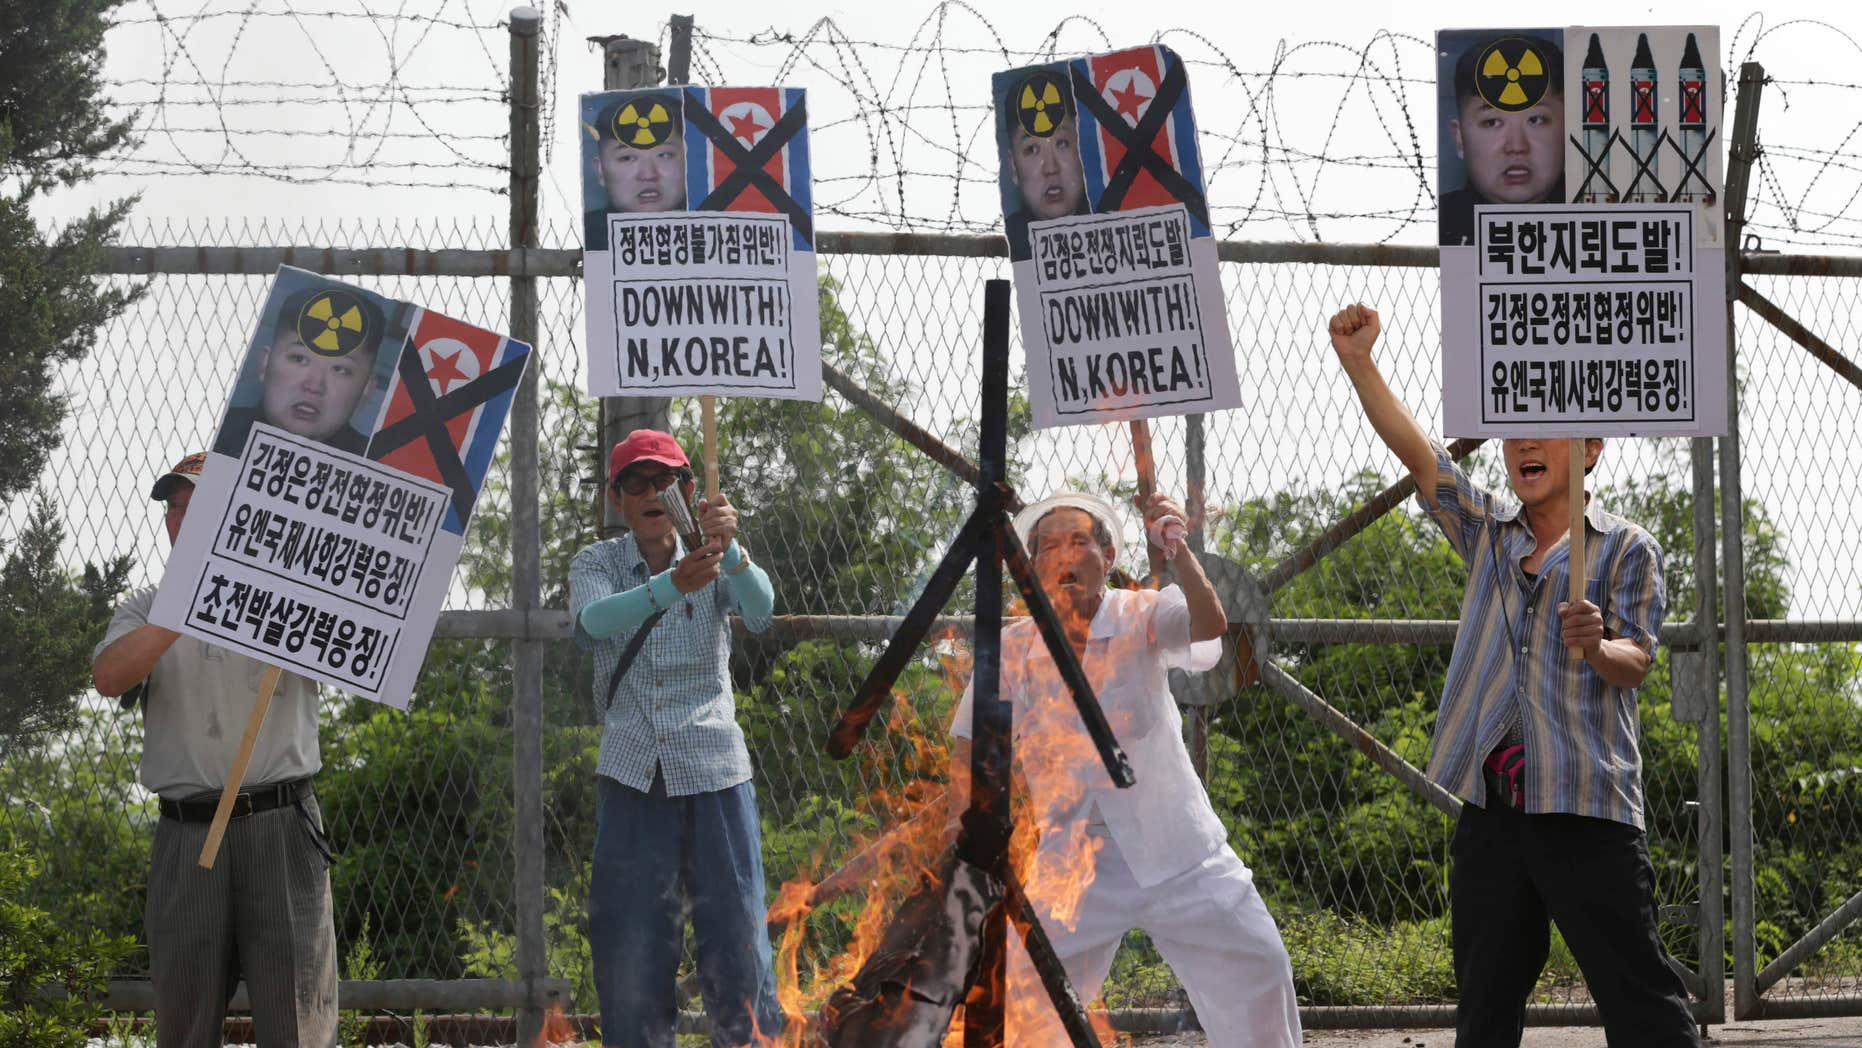 Aug. 11, 2015: Members of South Korean conservative group shout slogans after burning an effigy of North Korean leader Kim Jong Un and North Korean flags during a rally denouncing the North Korea at the Imjingak Pavilion near the border village of Panmunjom in Paju, South Korea.